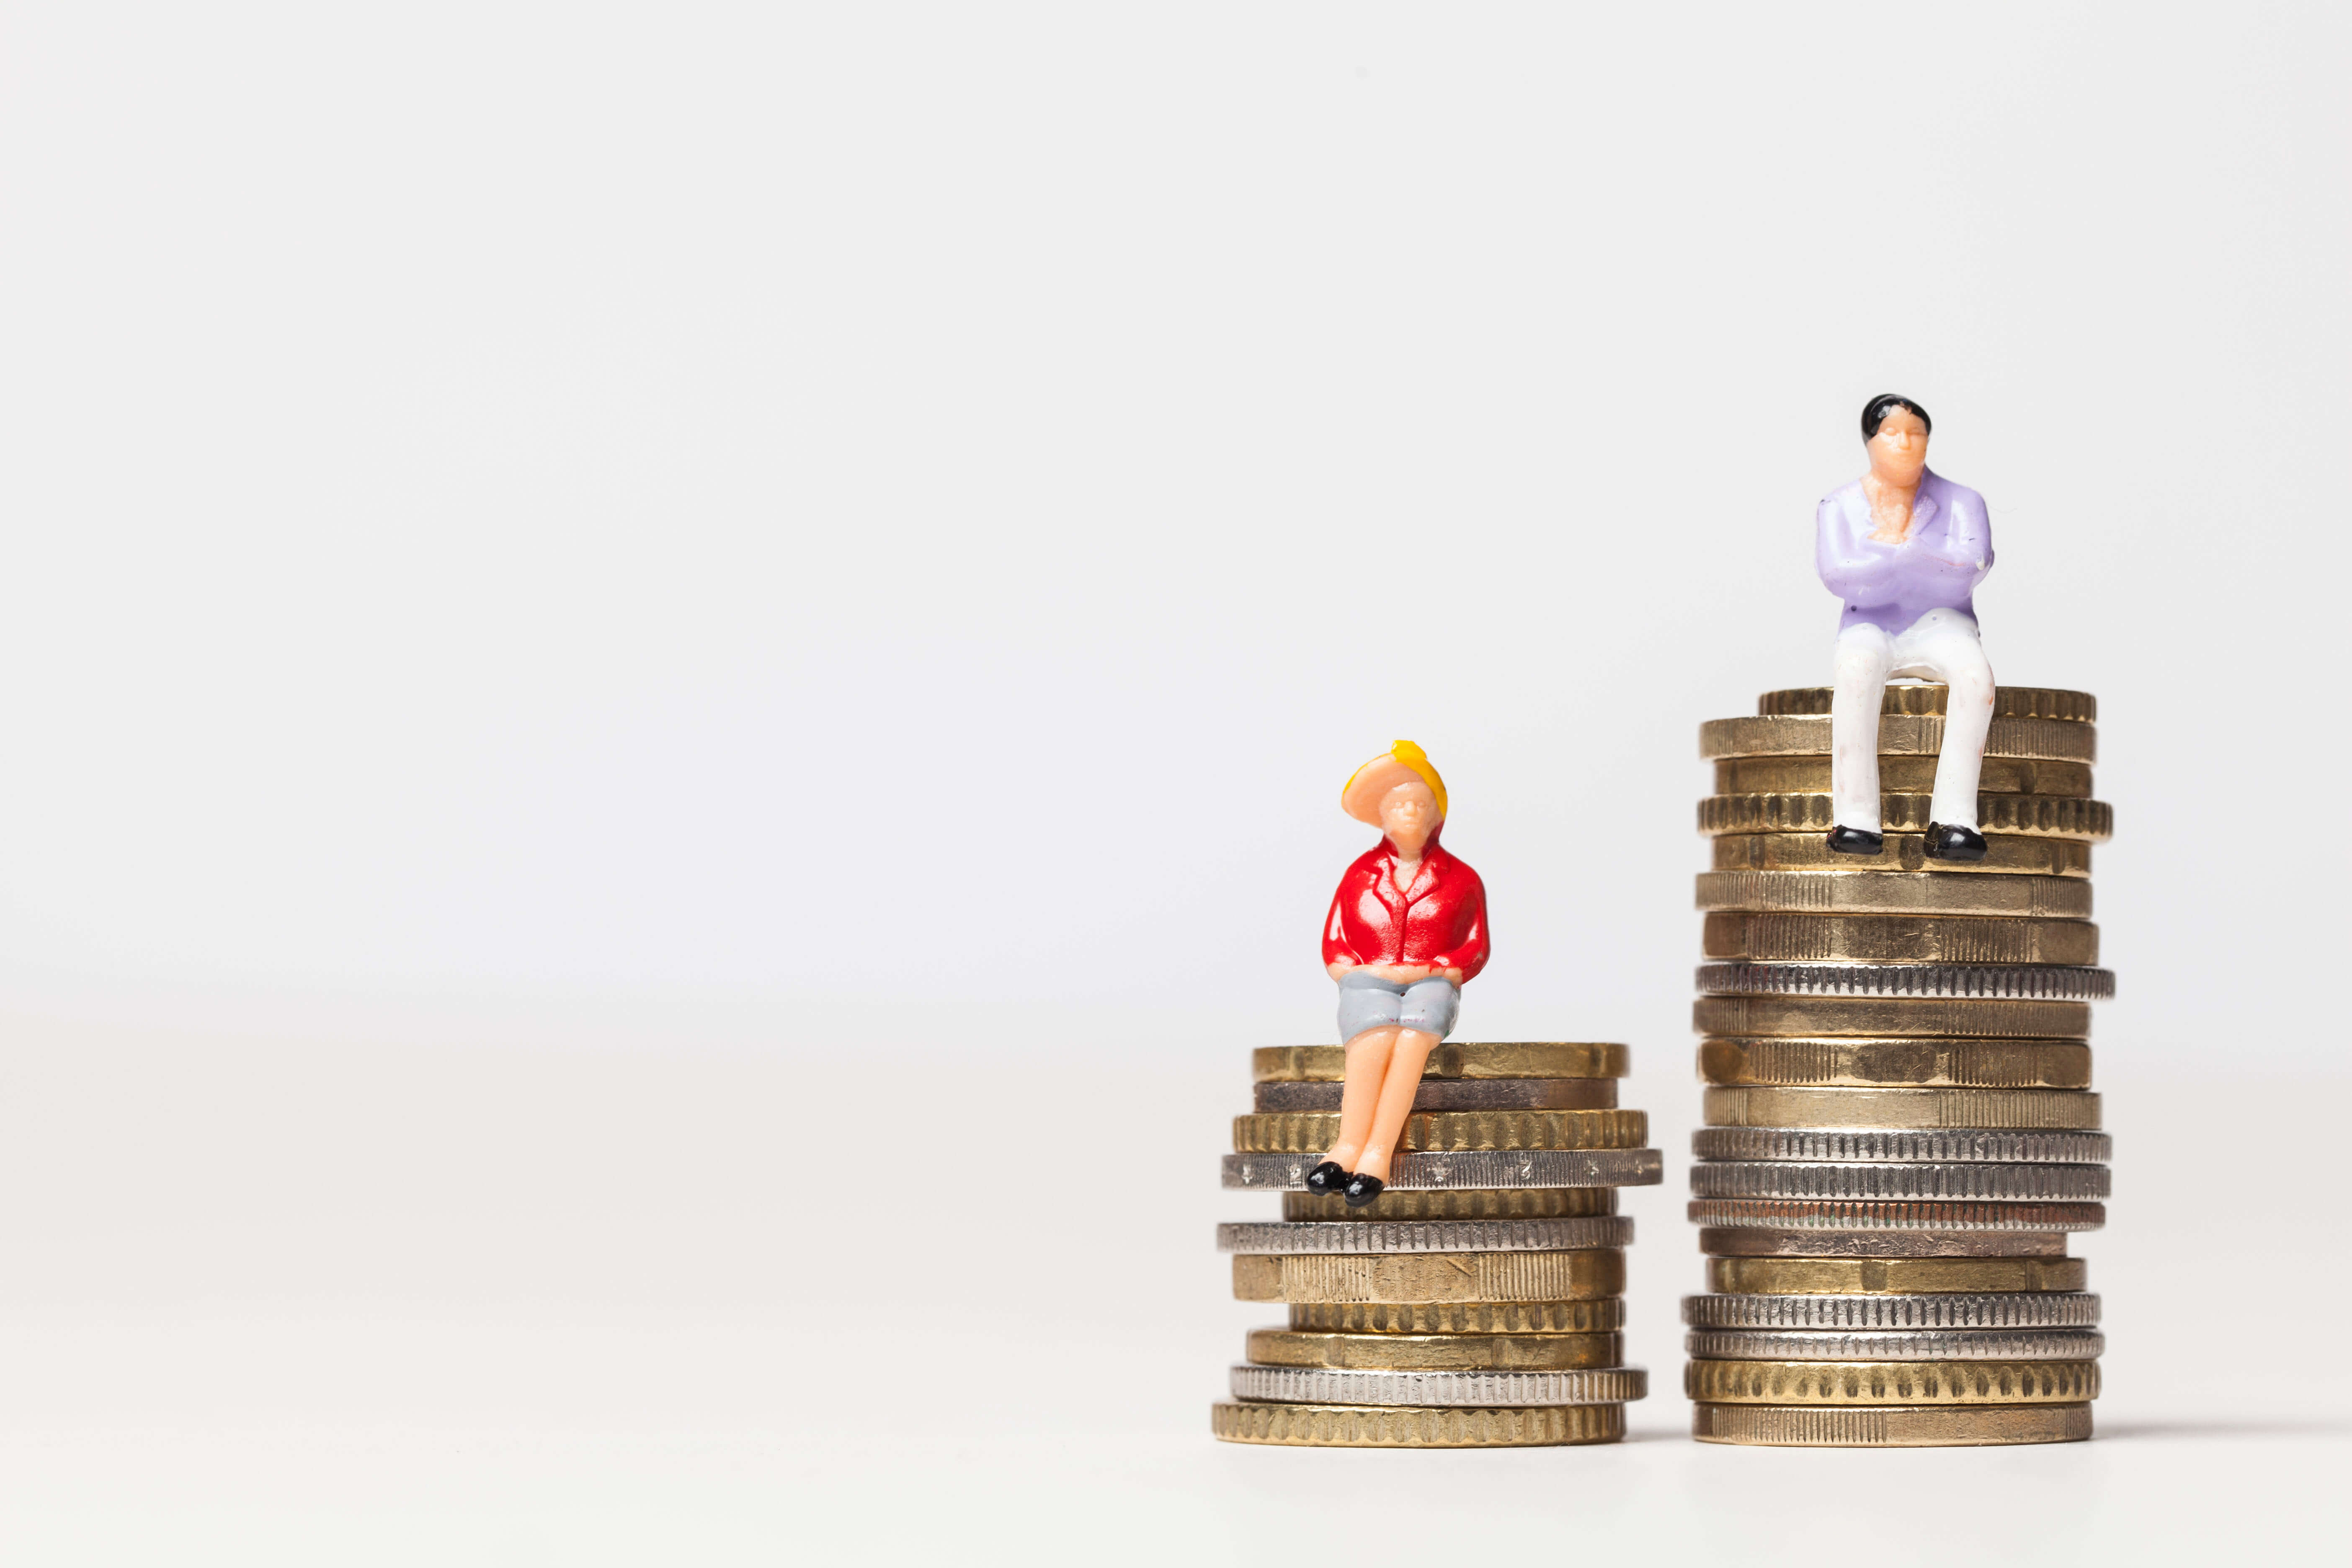 Man sitting on large tower of coins, woman on smaller tower of coins